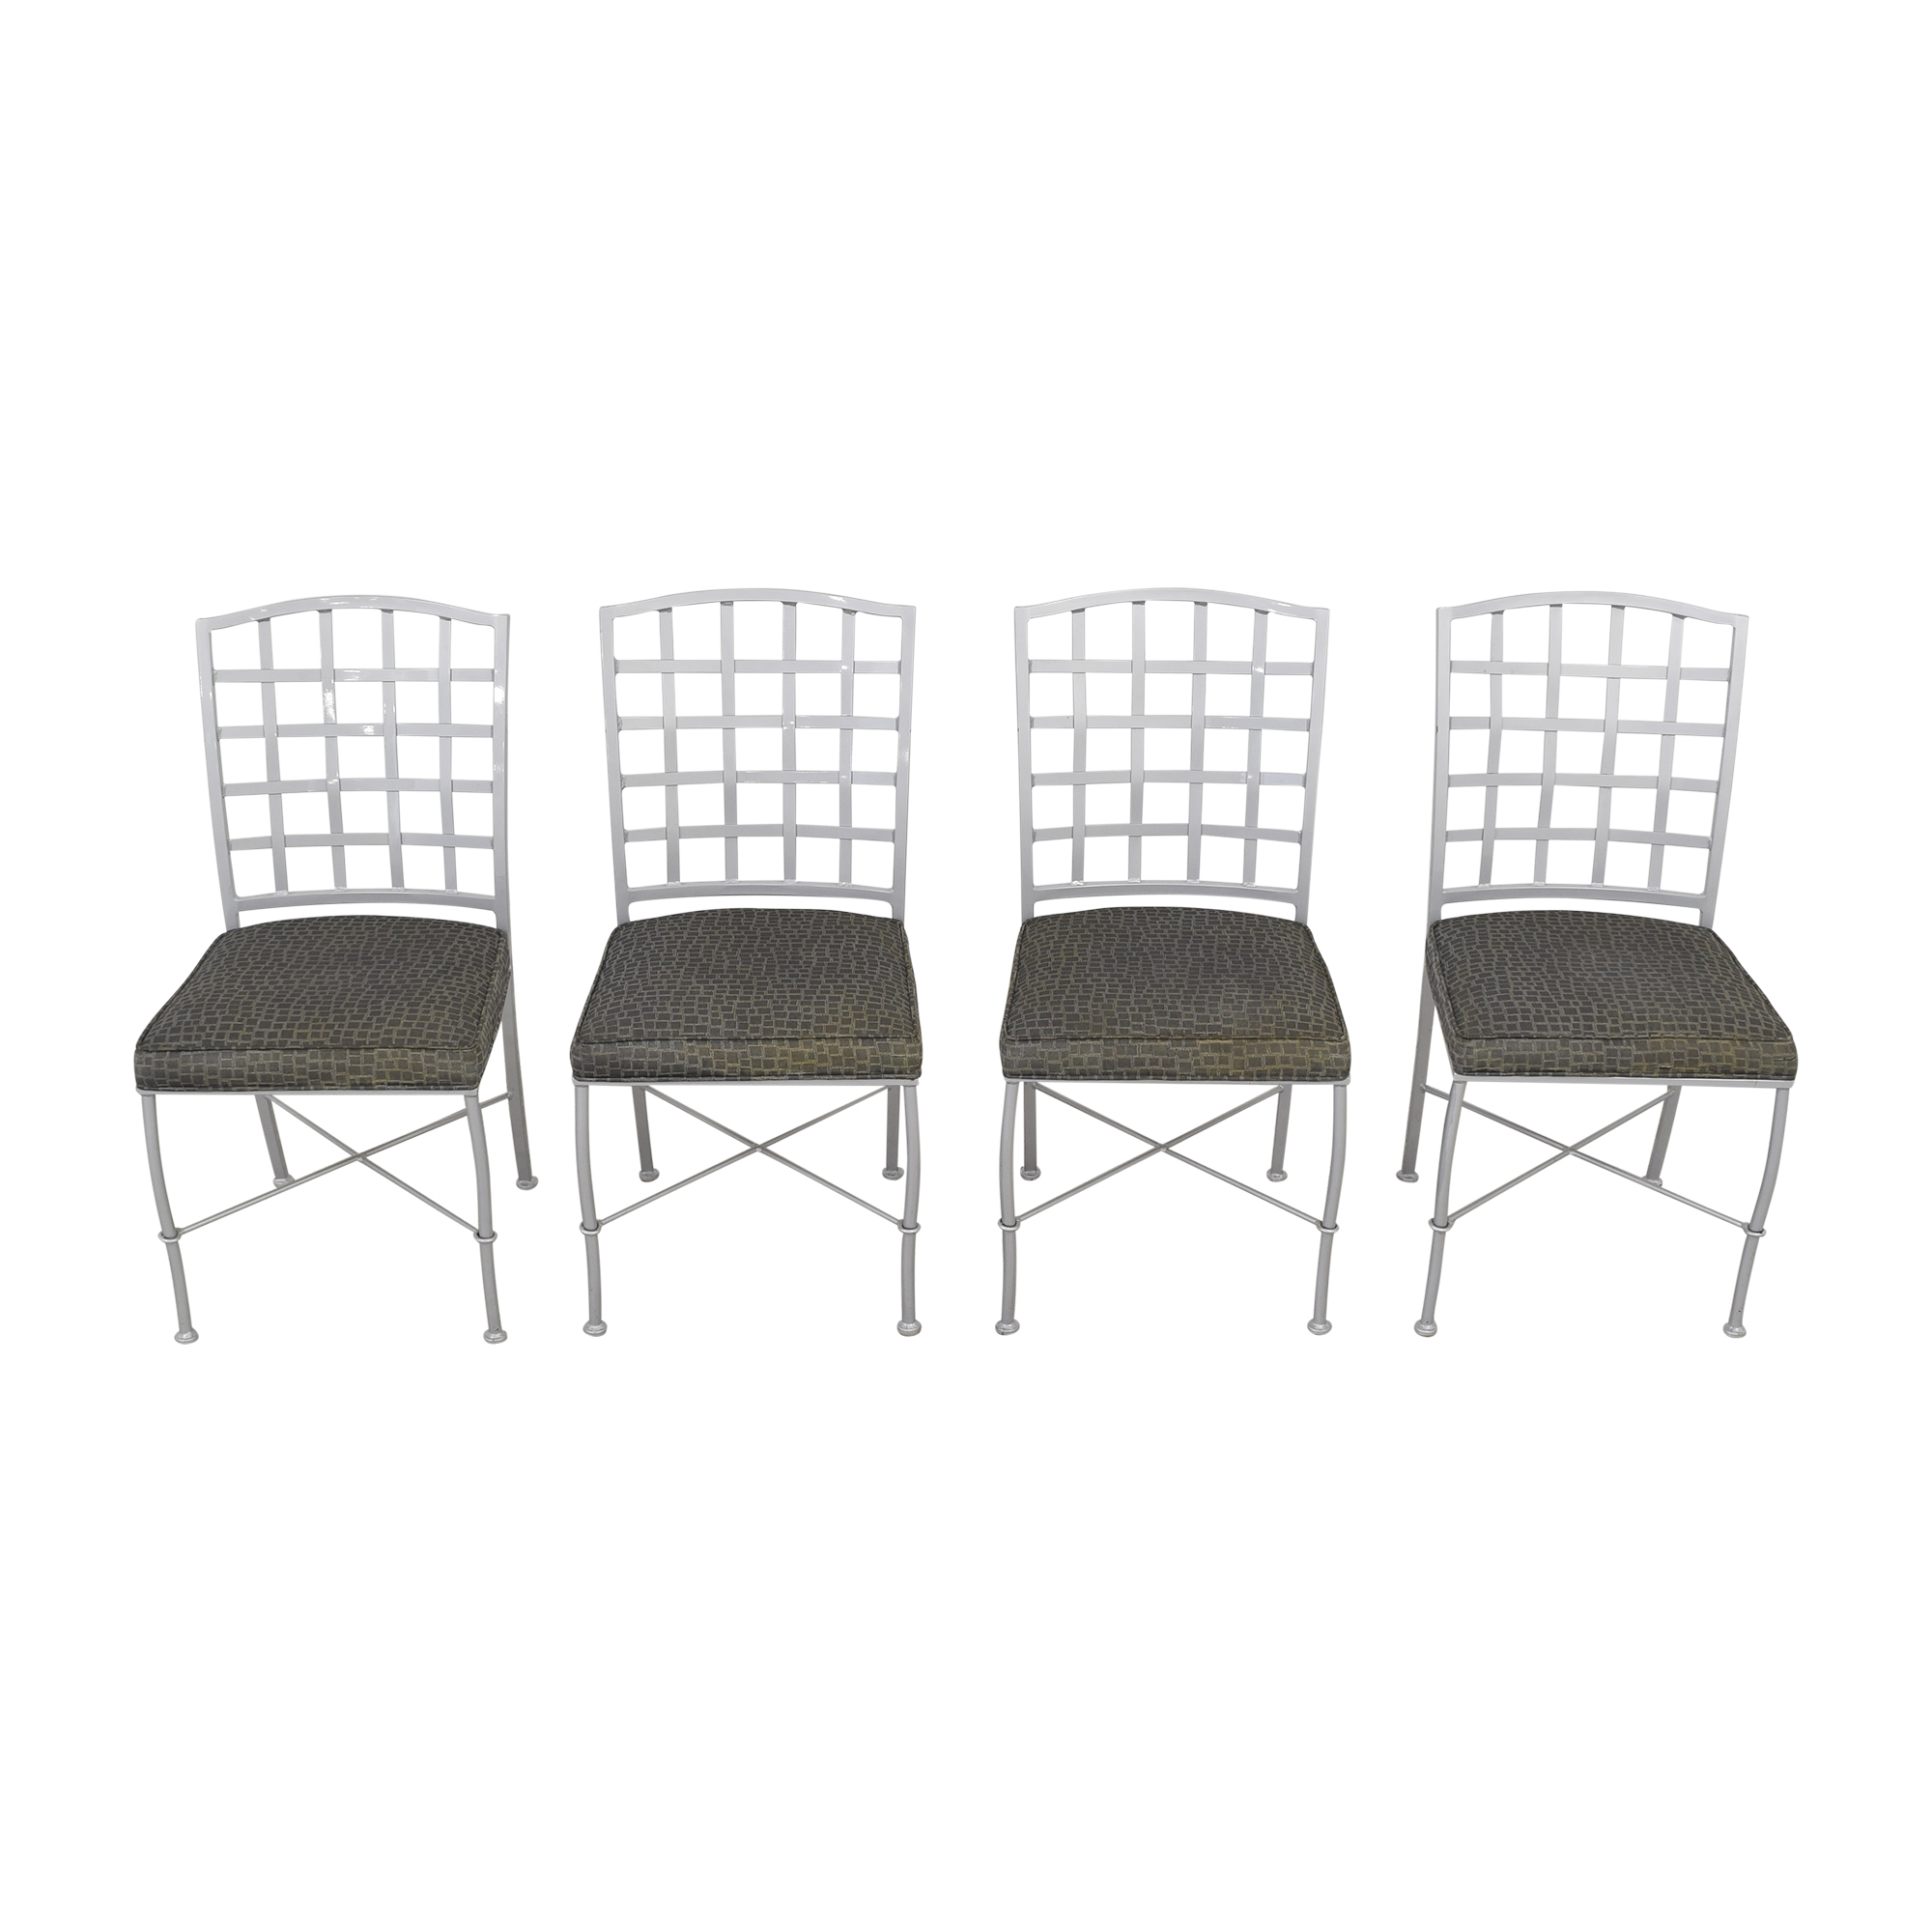 Johnston Casuals Johnston Casuals Lattice Back Dining Chairs second hand